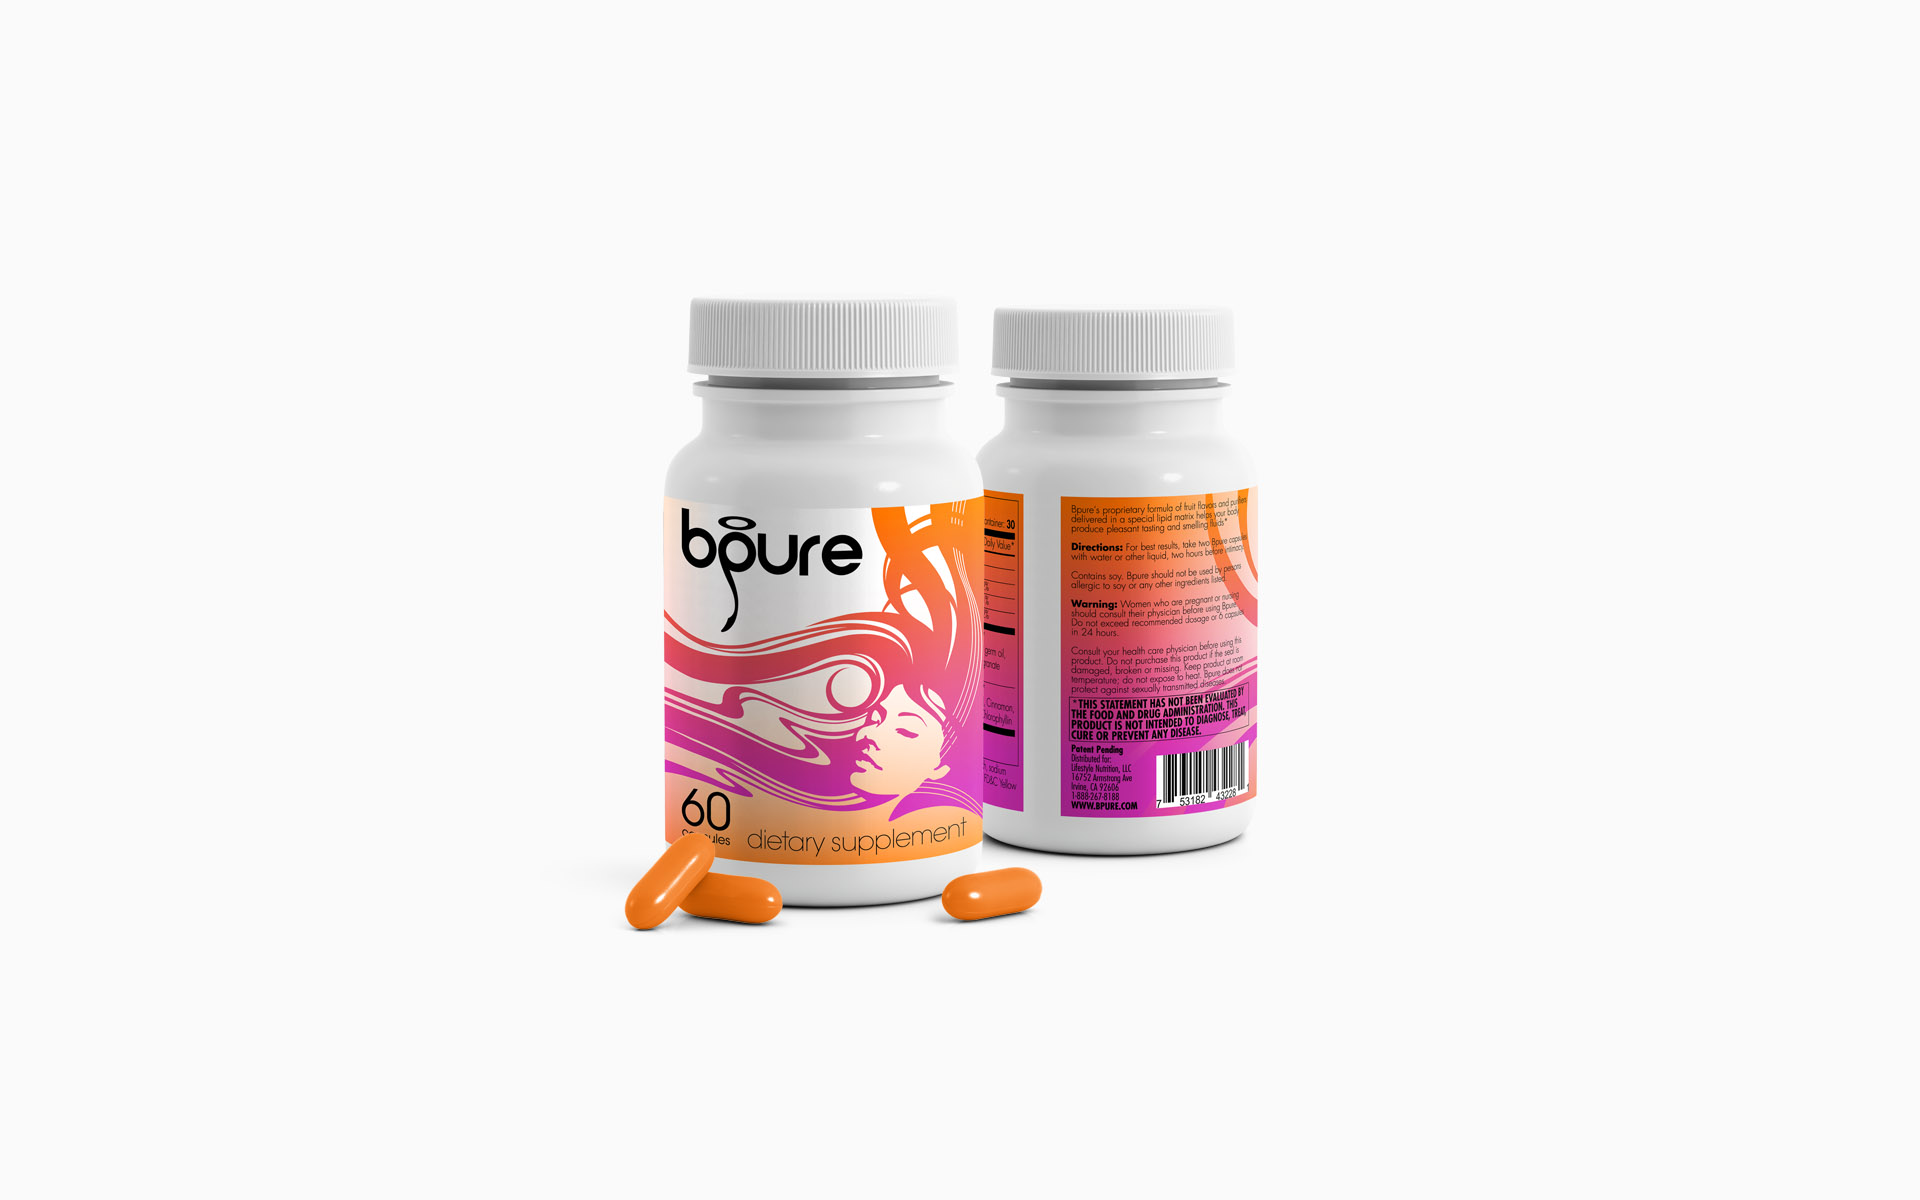 Lifestyle Nutrition bPure Labeling Visualization